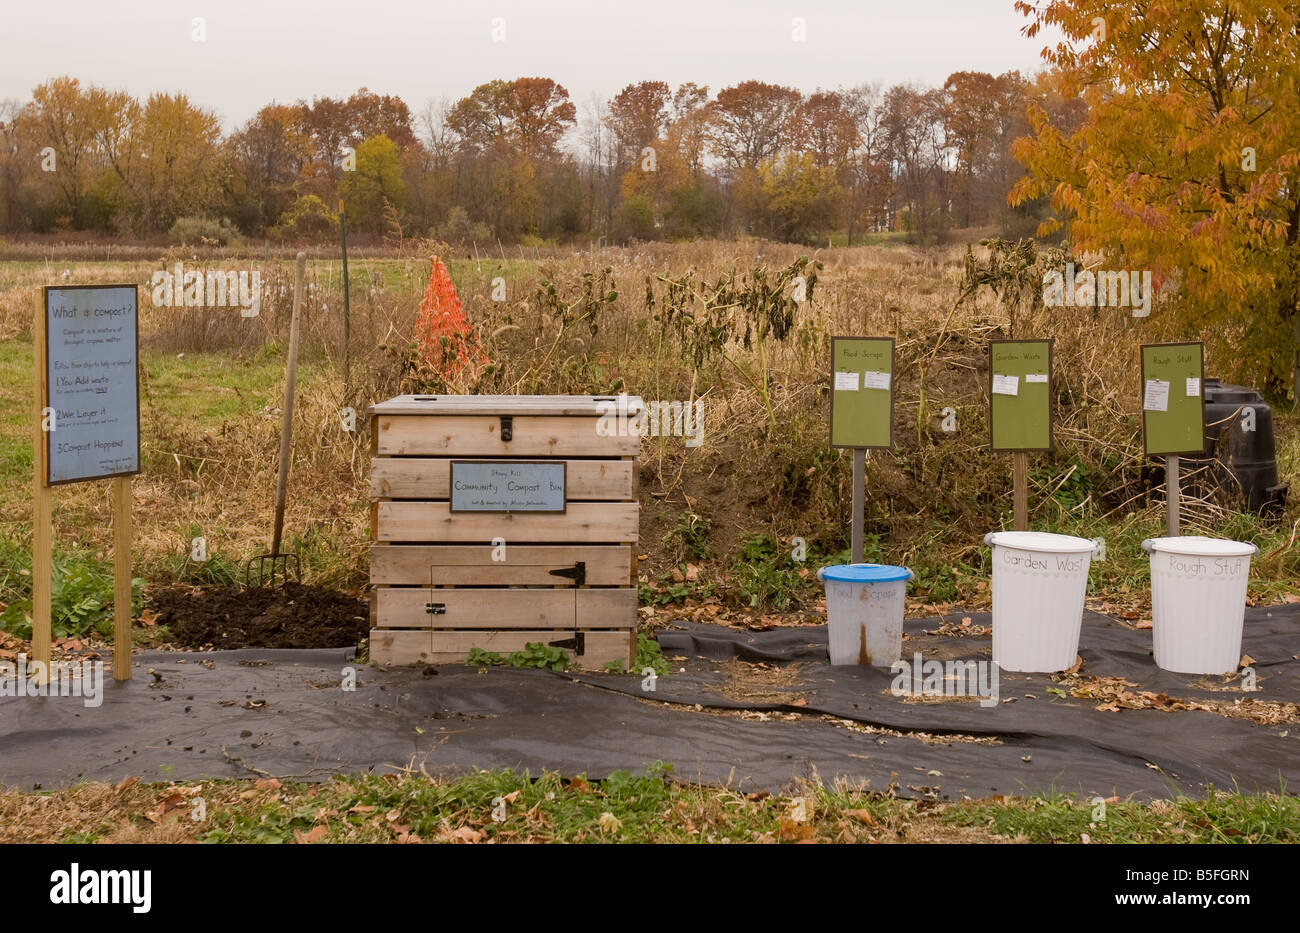 Compost bin with containers to separate waste - Stock Image